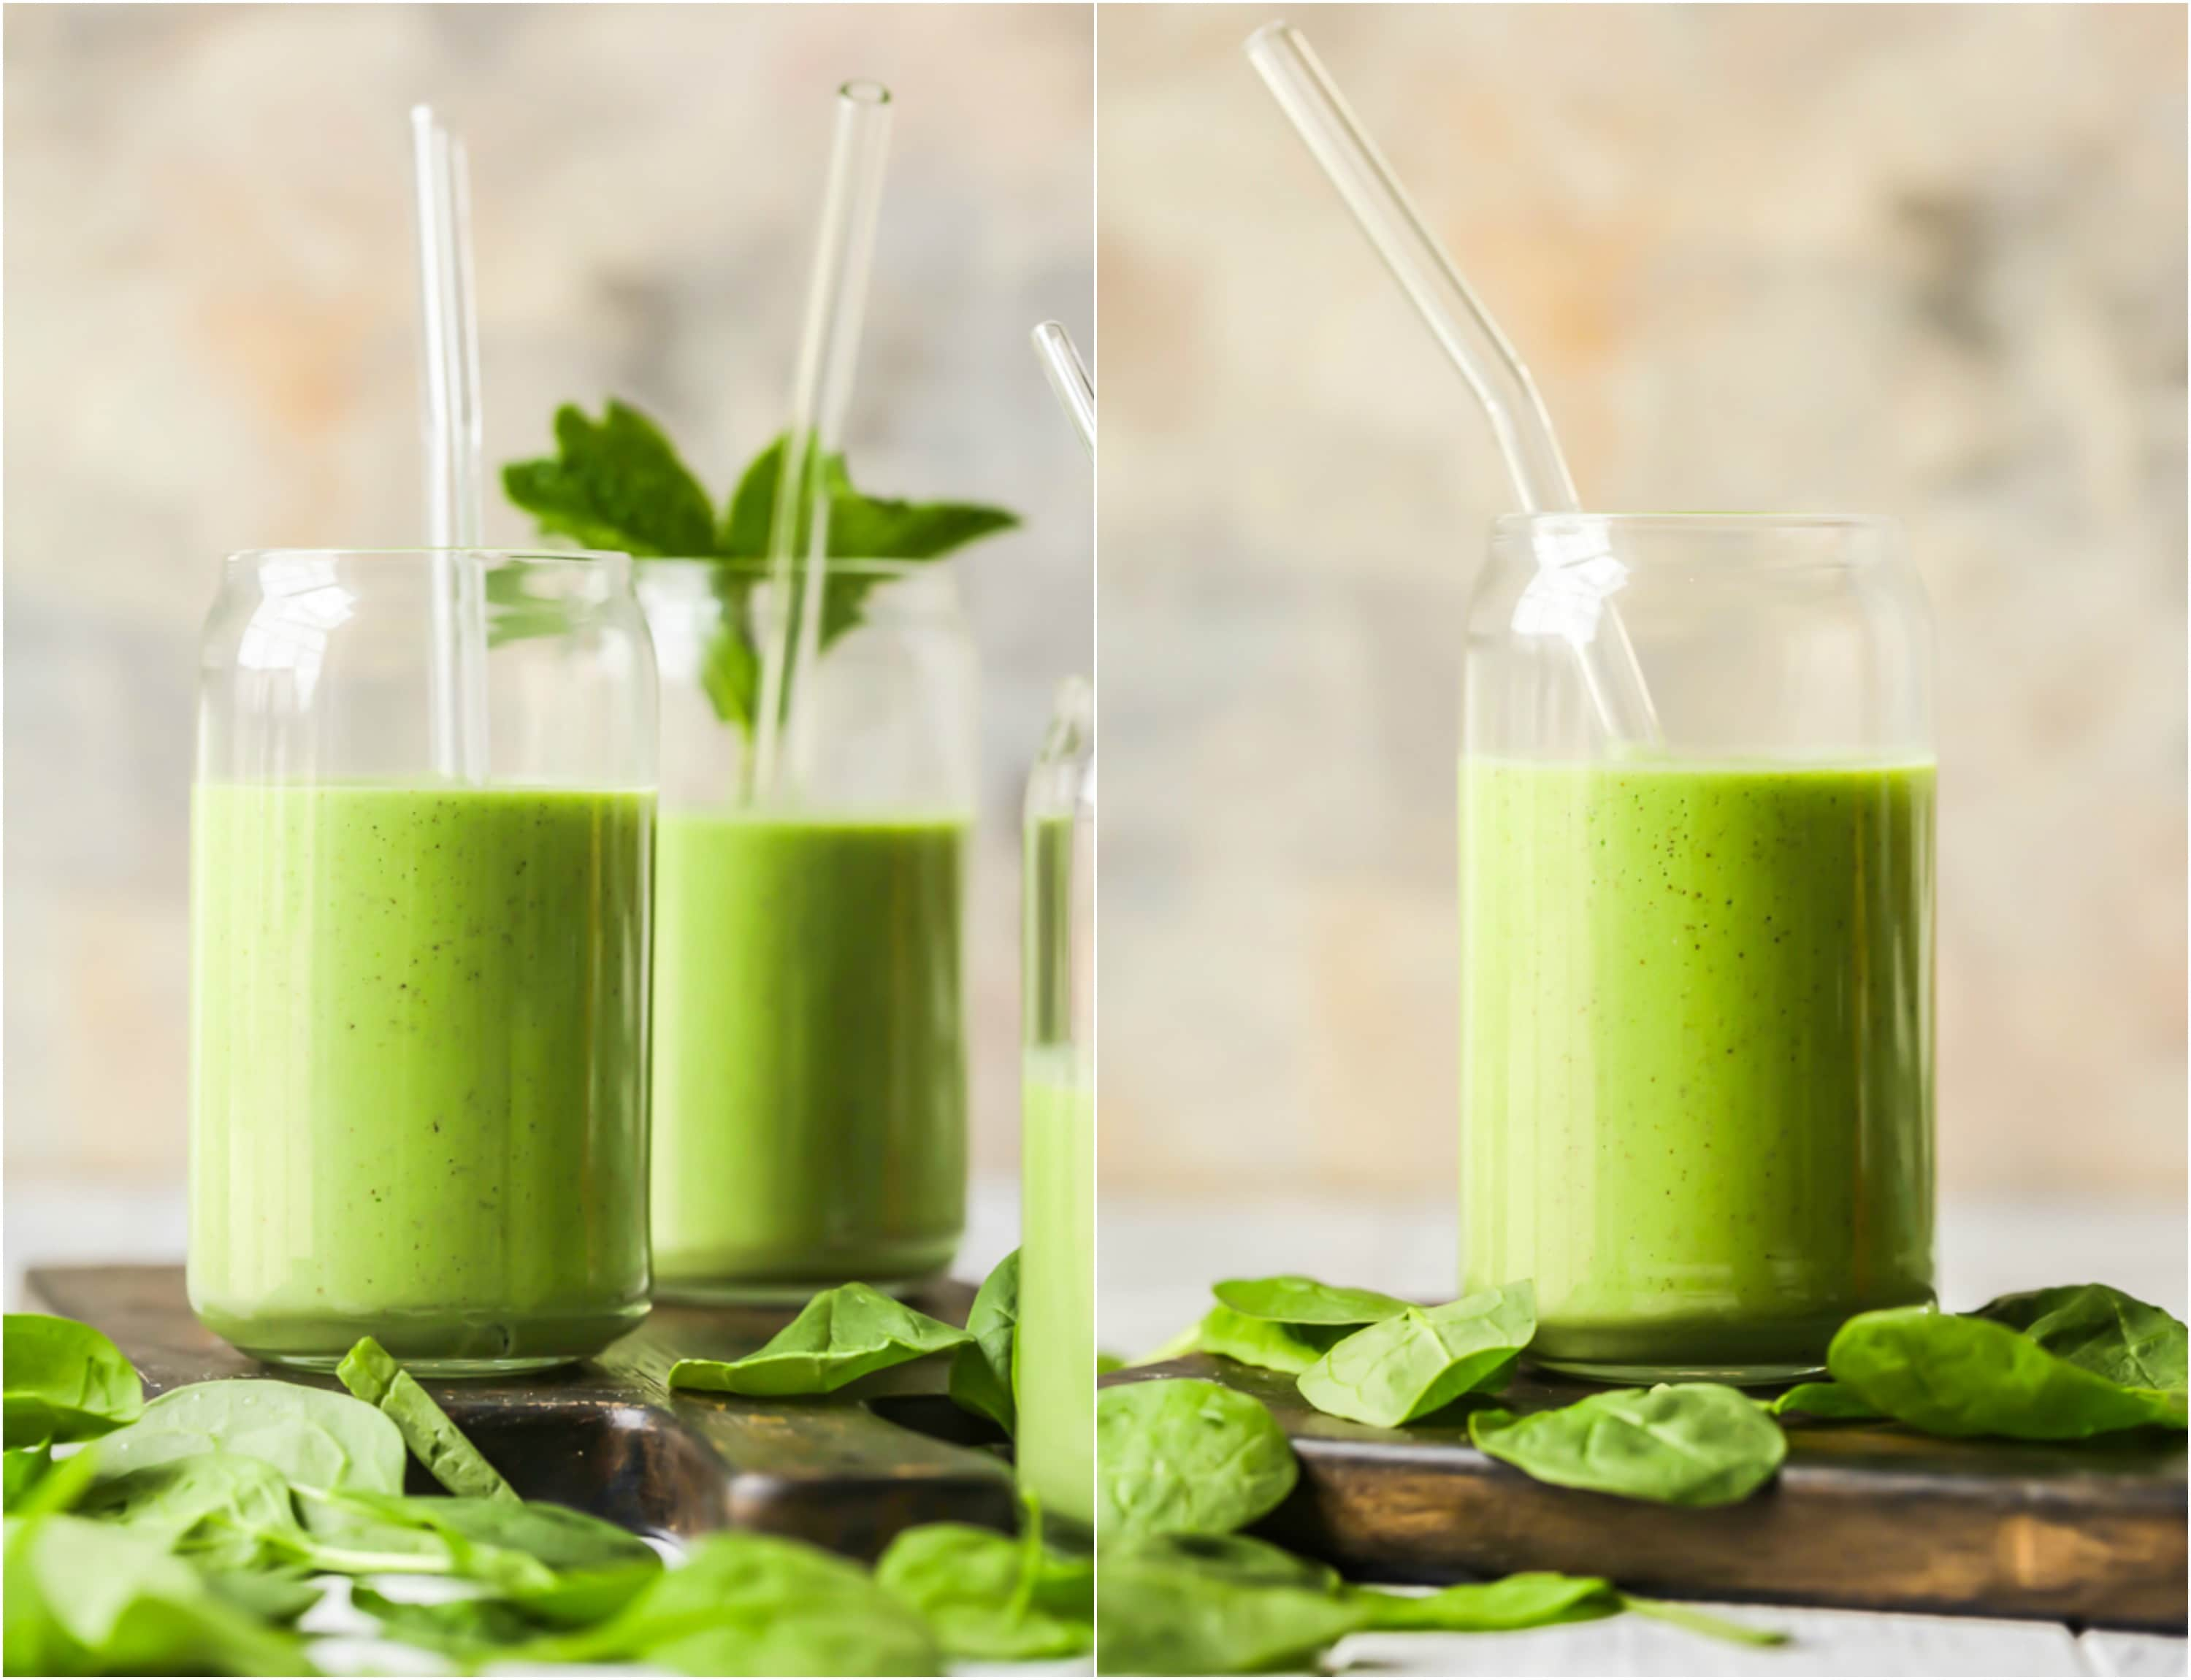 This Creamy Green Smoothie Recipe is all your need to have the most amazing morning any day of the week. This Green Detox Smoothie is filled with light and fresh ingredients like pineapple, spinach, apple, kale, banana, Greek Yogurt, and more. This Green Goddess Smoothie Recipe will make you feel bright and sunny first thing in the morning, after workouts, or any time you  whip one up. SO delicious, easy, and healthy!